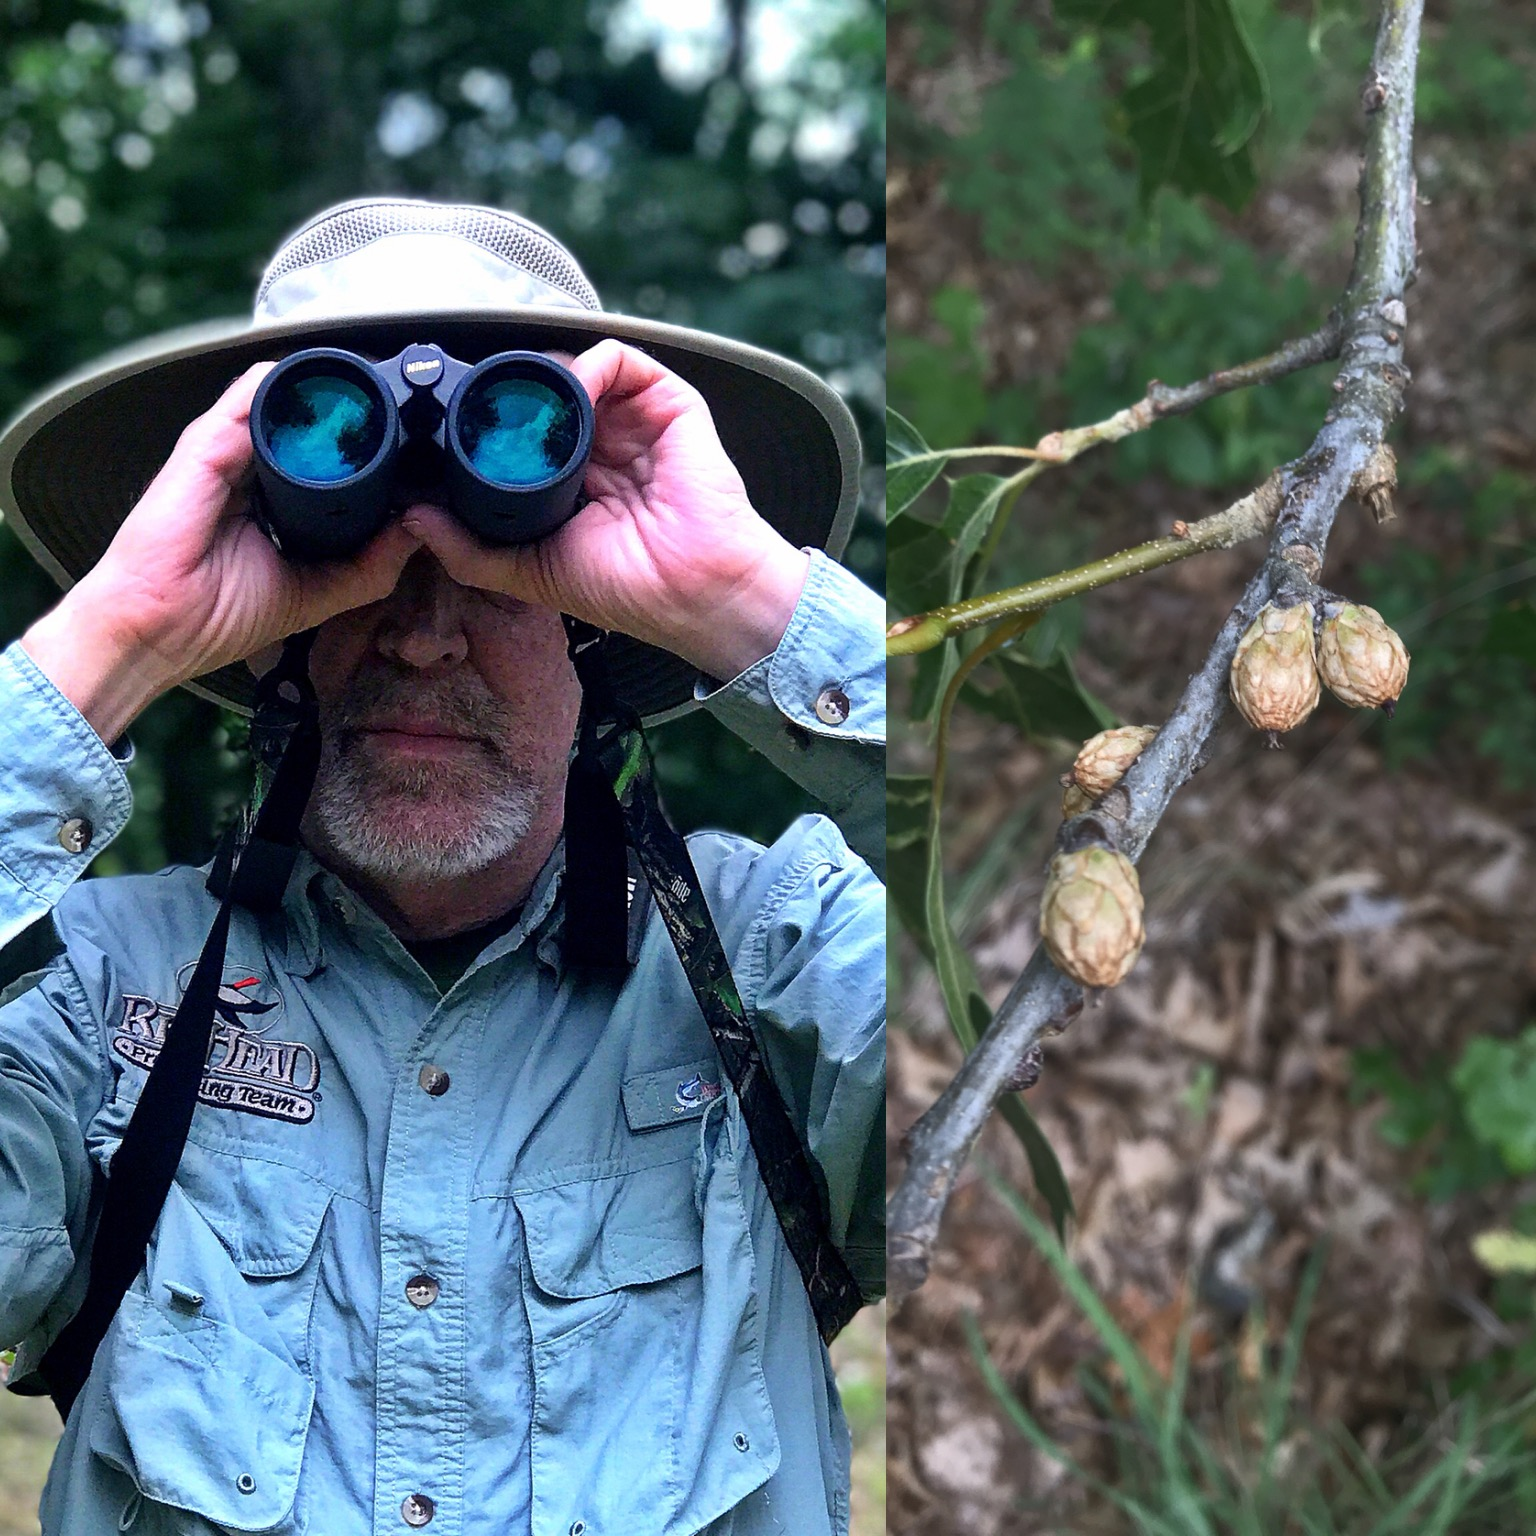 Grant scouting for acorns with Nikon binoculars